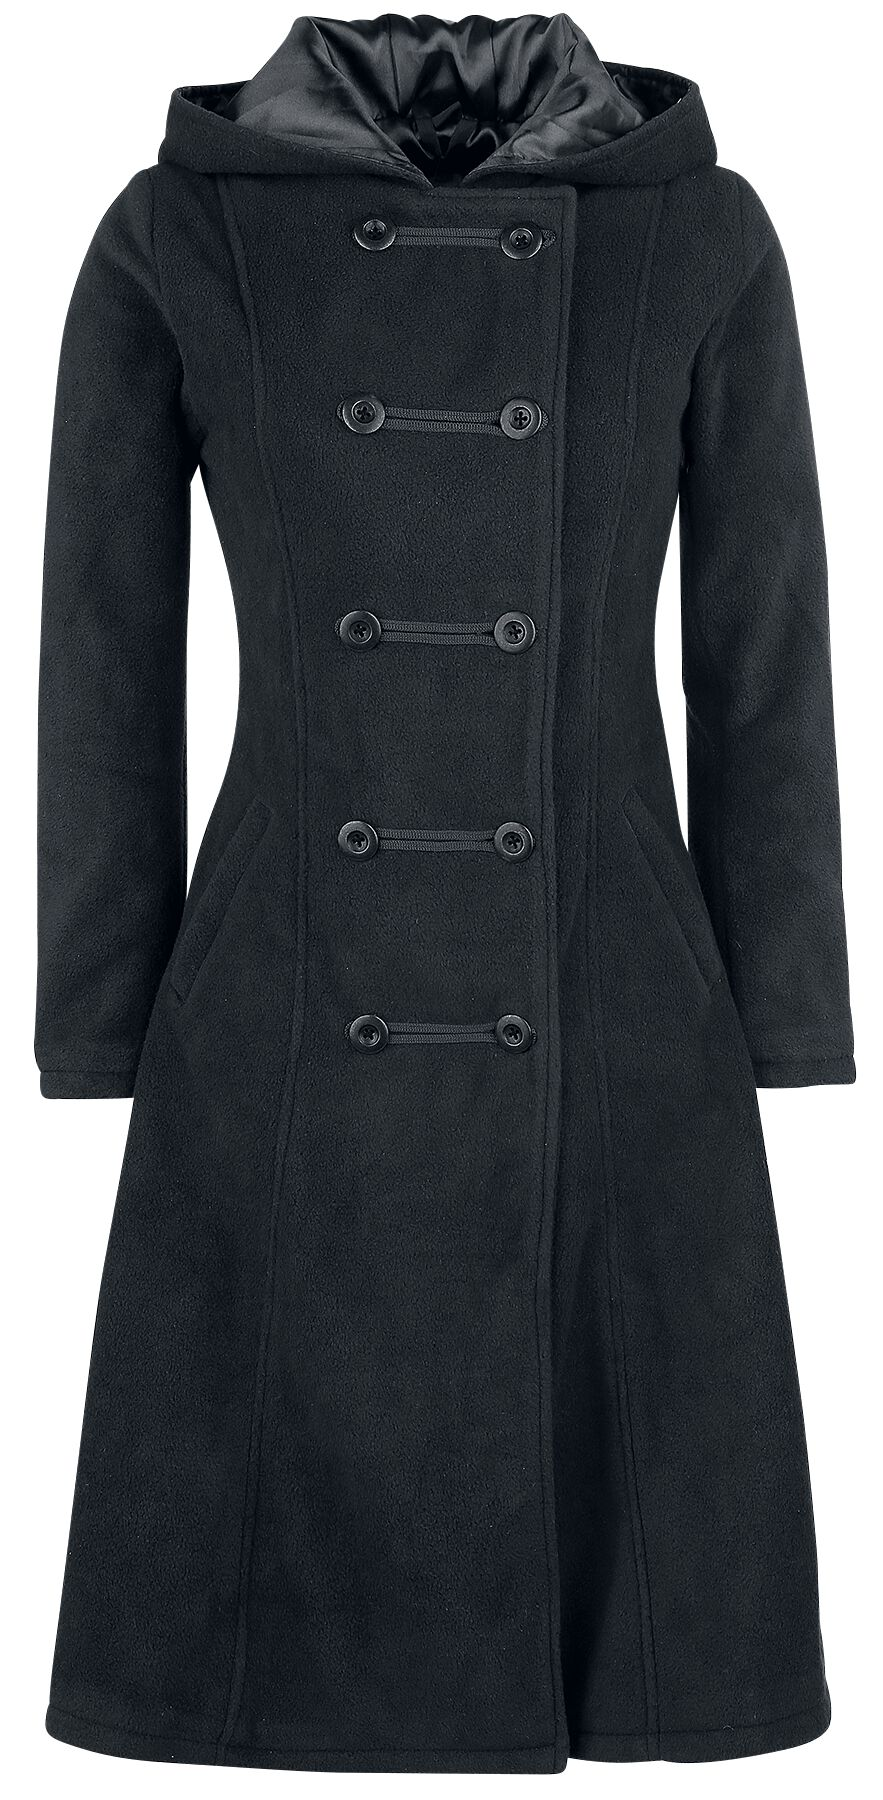 Image of   Gothicana by EMP Dark Fleece Coat Girlie frakke sort